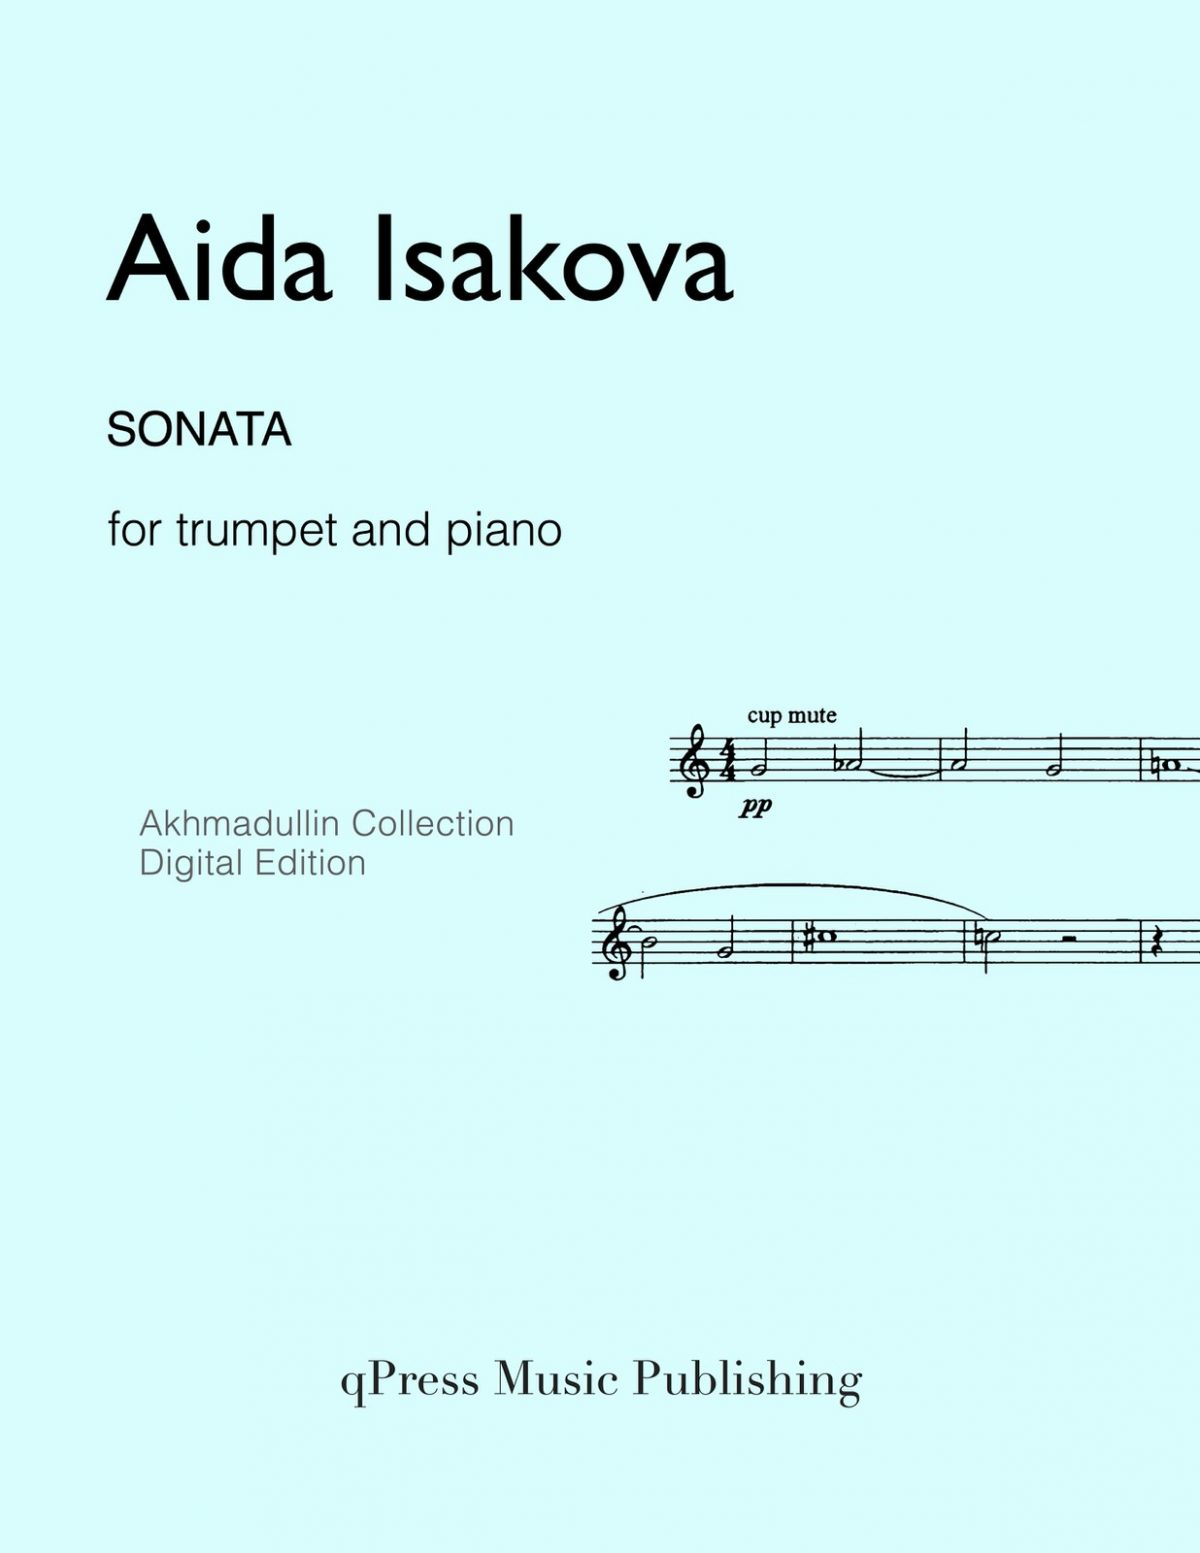 Isakova, Sonata (Score and Part)-p01